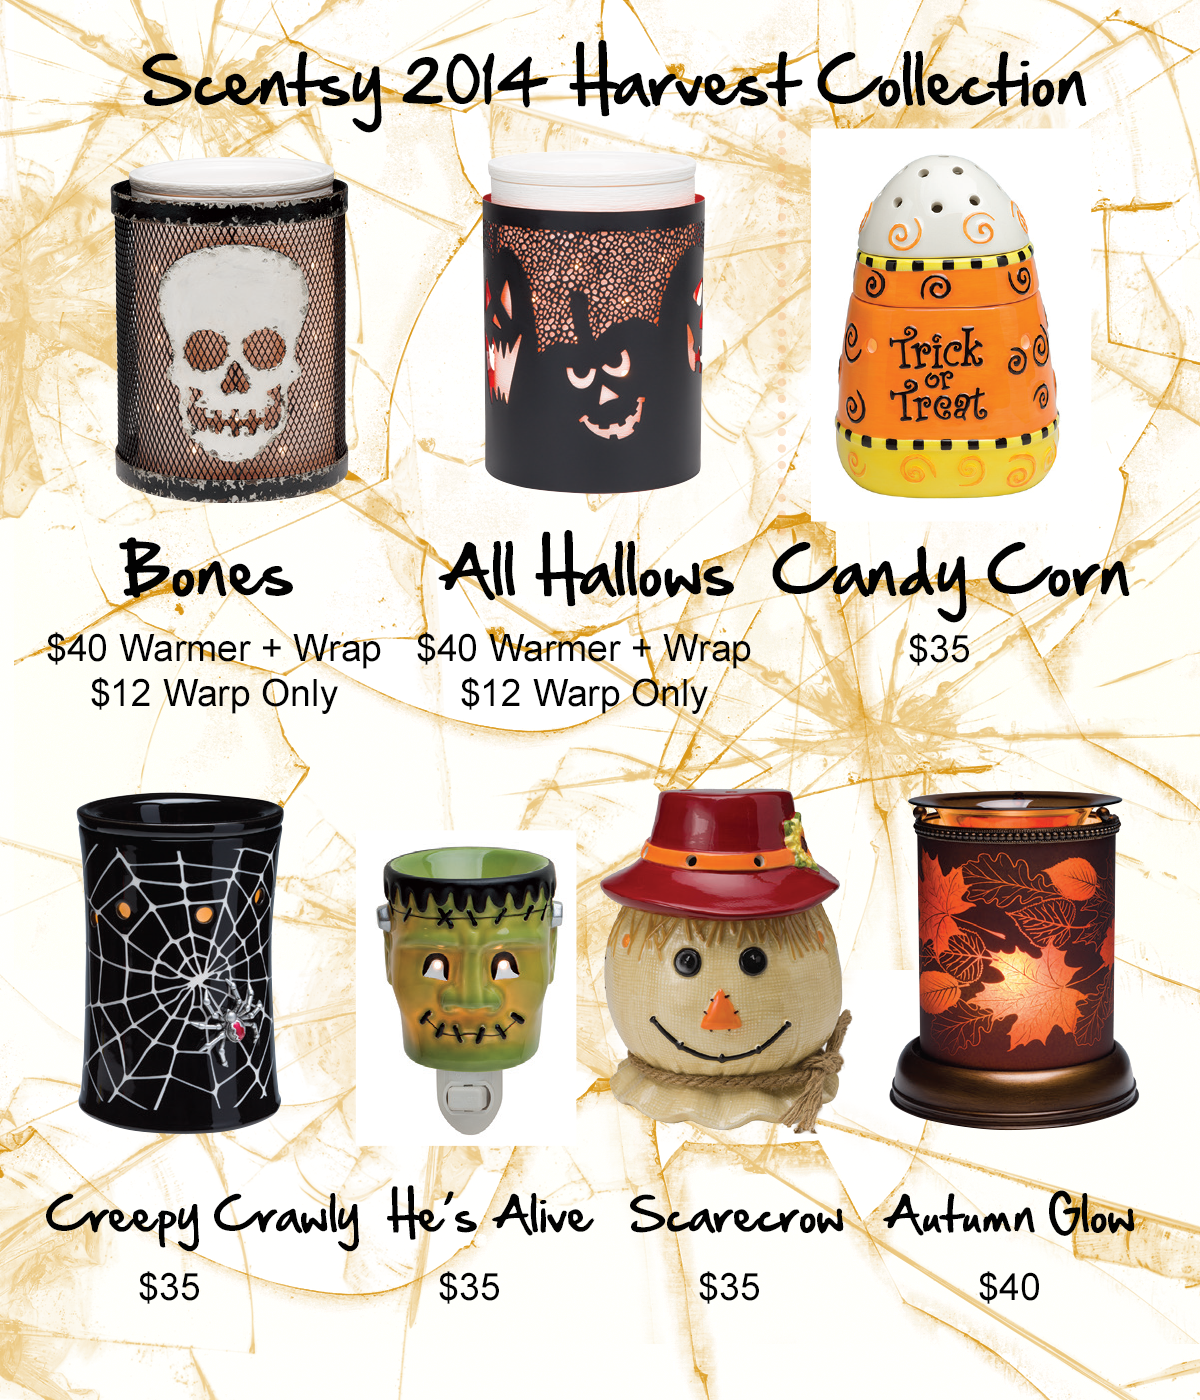 Ssentsy Halloween and Harvest Warmers